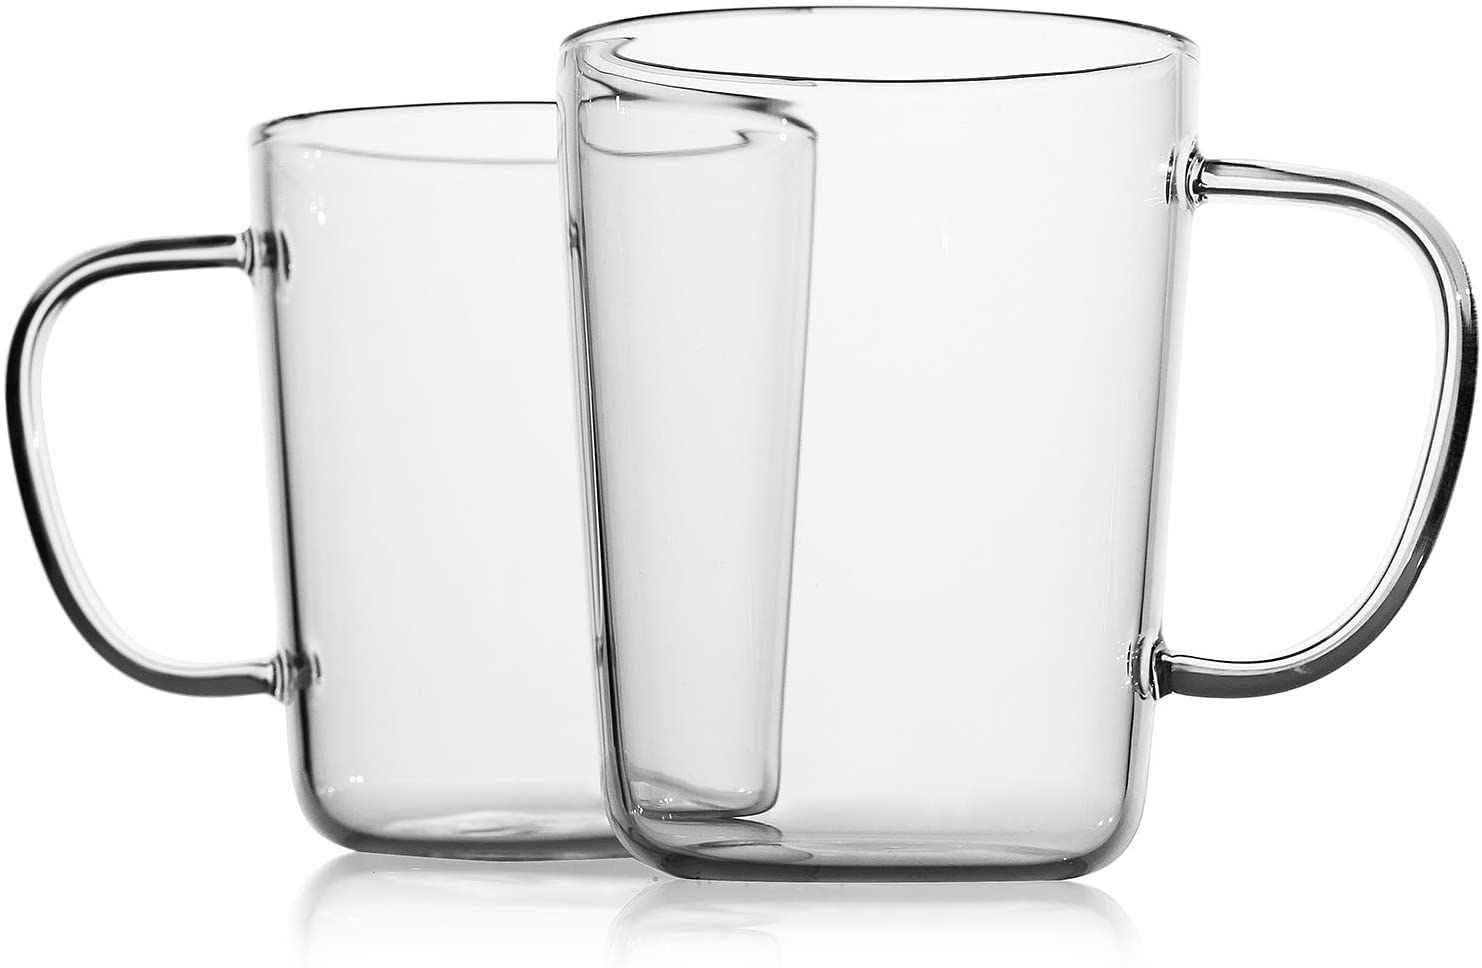 LUXU Glass Coffee Mugs(Set of 2)-17 oz,Clear Beer Mugs,Glass Tea Cups with Comfortable Handle,Lead-free Drinking Glasses,Perfect for Latte,Espresso,Juice,Water,Milk or Hot and Cold Beverage